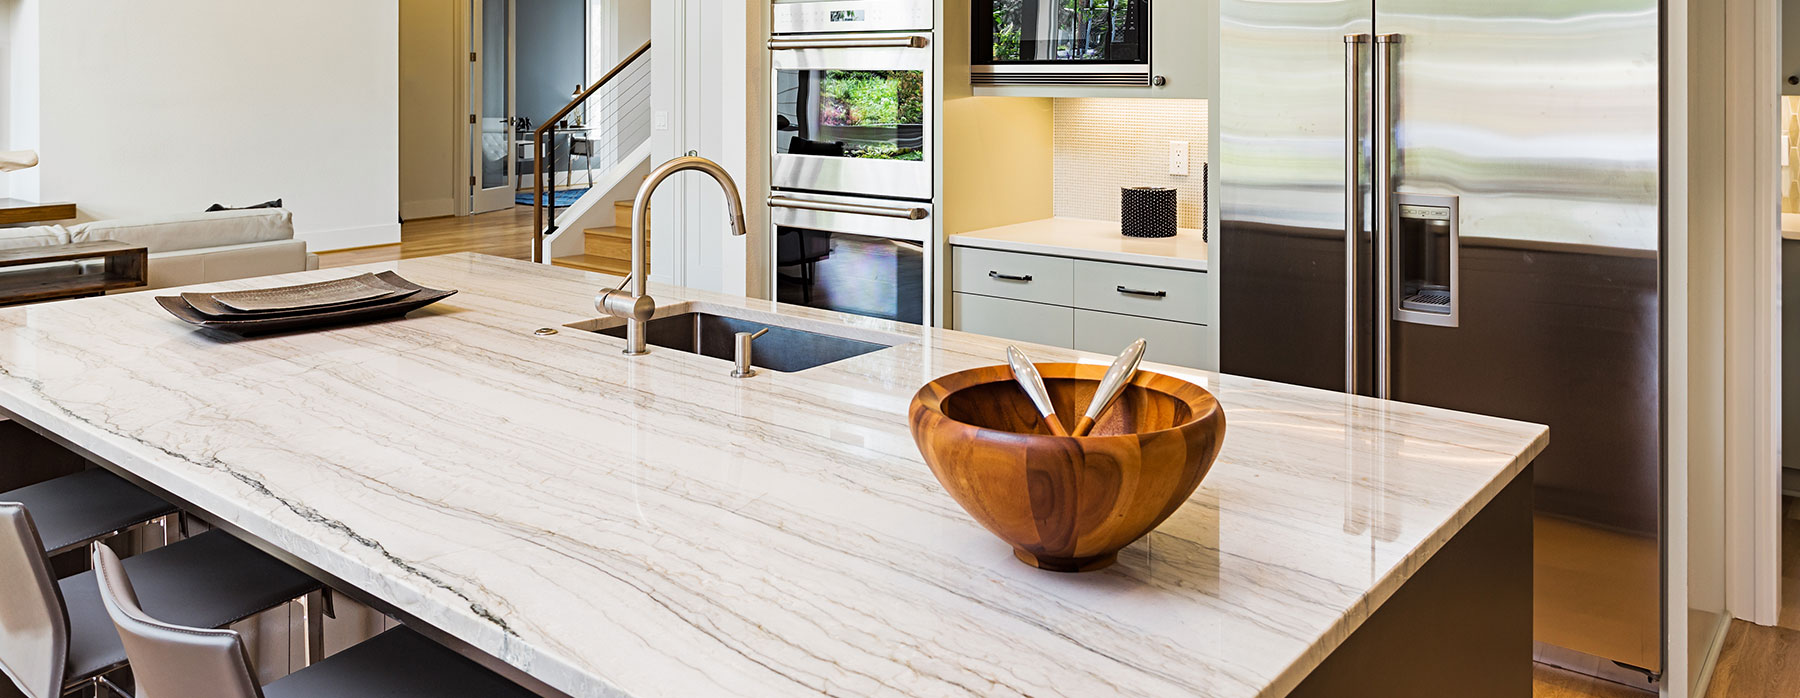 Facts About Quartz Countertops | Flintstone Marble and Granite